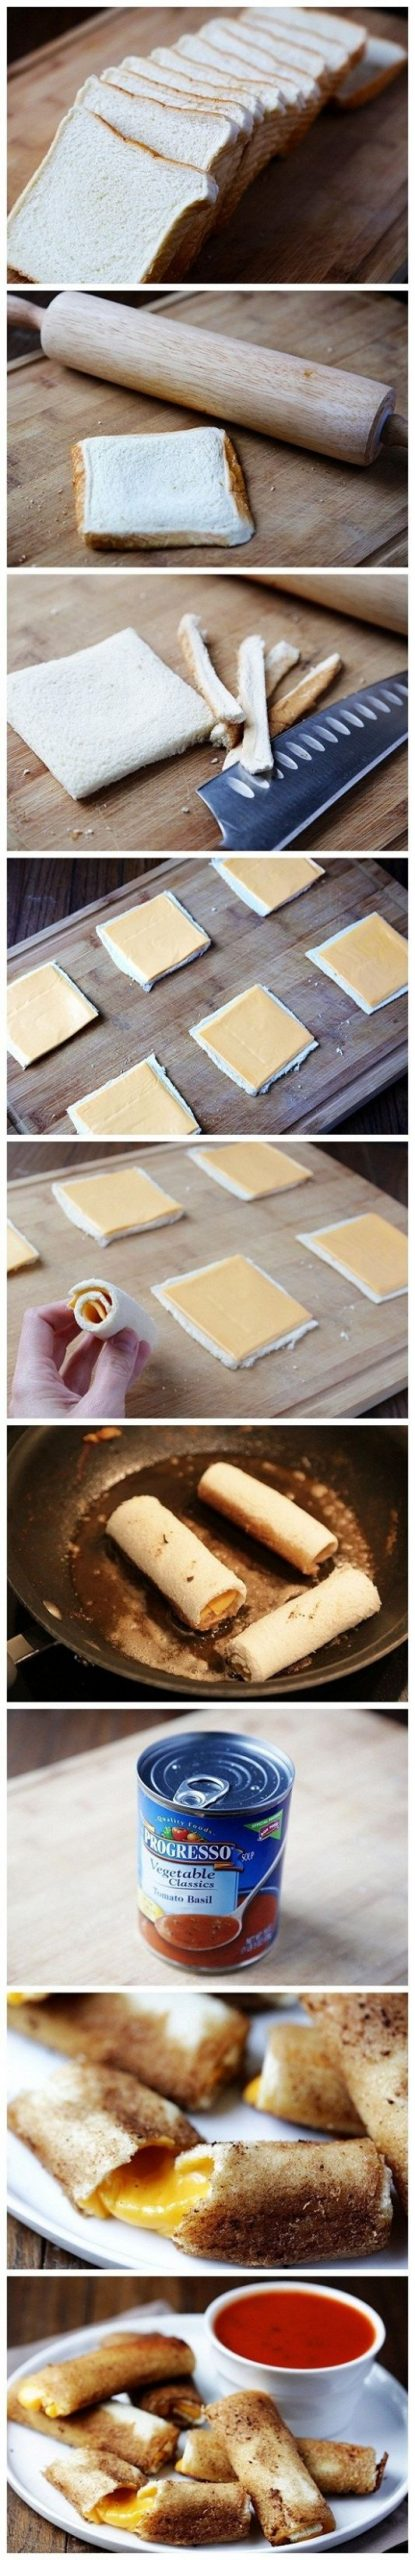 10 Easy Recipes and Cooking Hacks Everyone Should Know - Easy Recipes Everyone Should Know